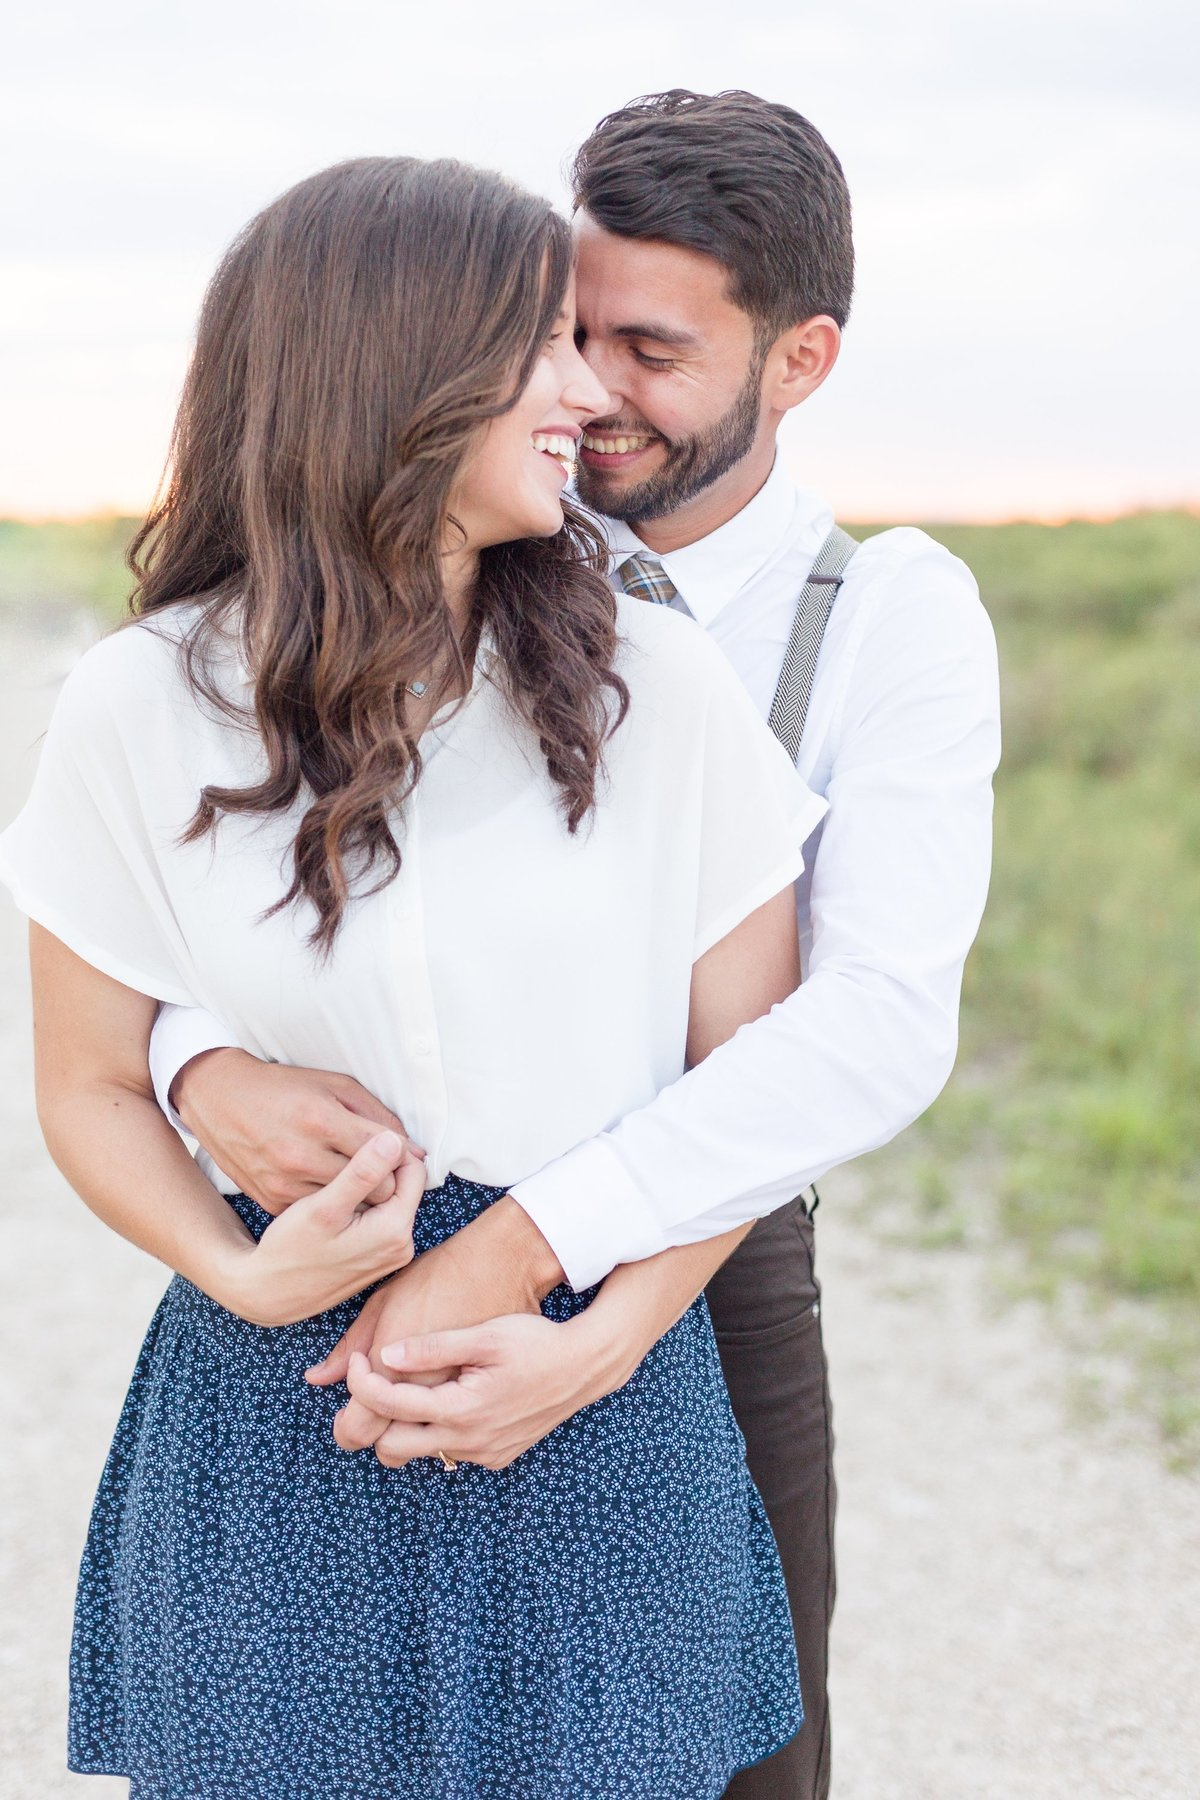 Everglades-Fort-Lauderdale-Florida-Engagement-Chris-Sosa-Photography-16